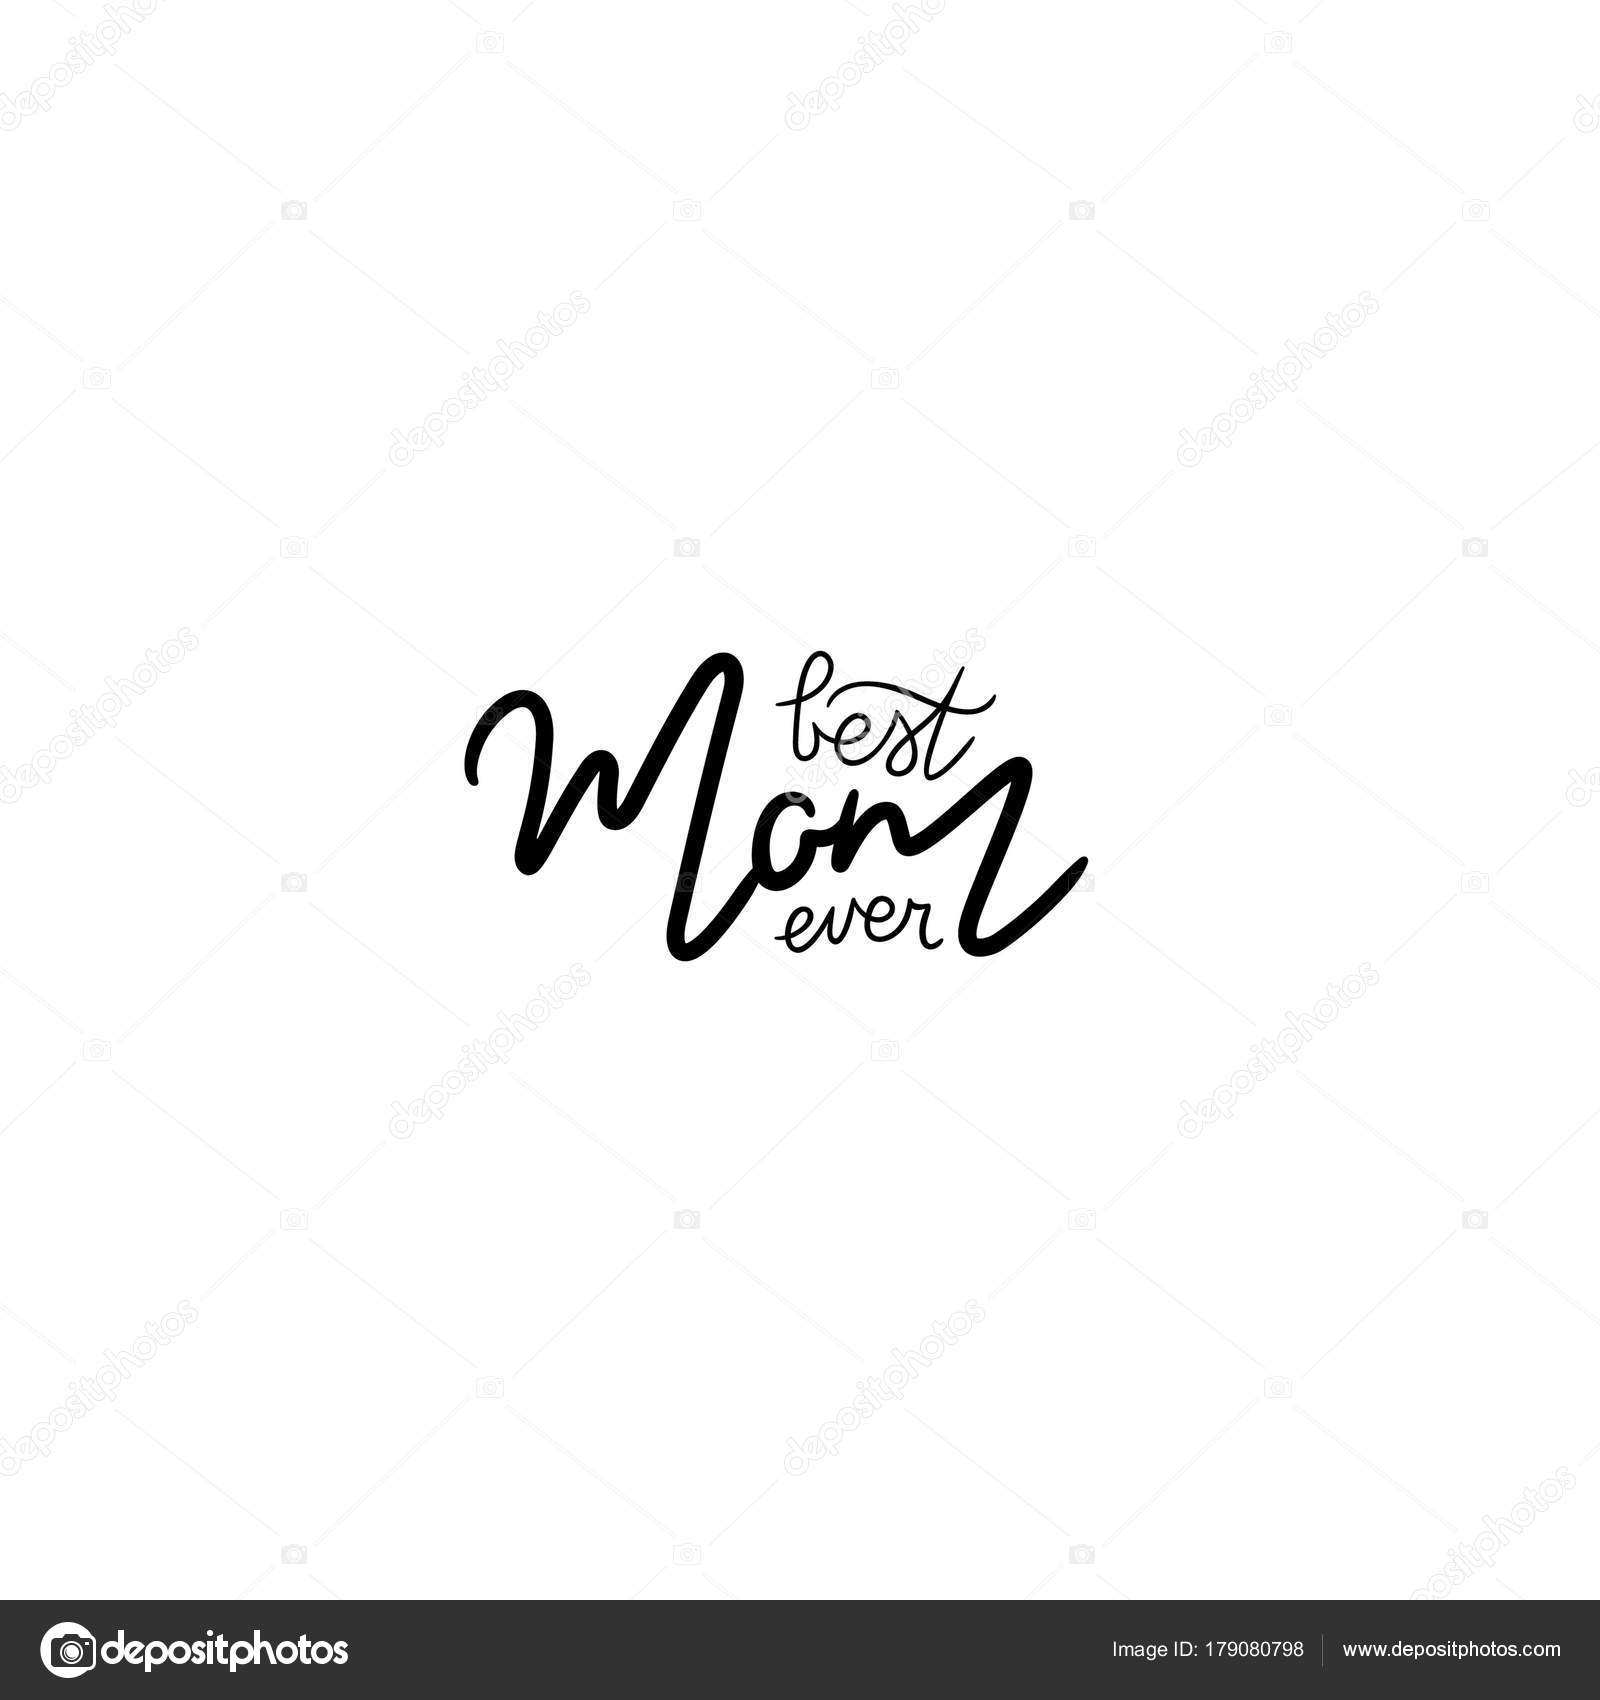 Beautiful calligraphic text greeting cards make christmas cards beautiful greeting card calligraphy text best mom ever stock depositphotos 179080798 stock illustration beautiful greeting kristyandbryce Choice Image